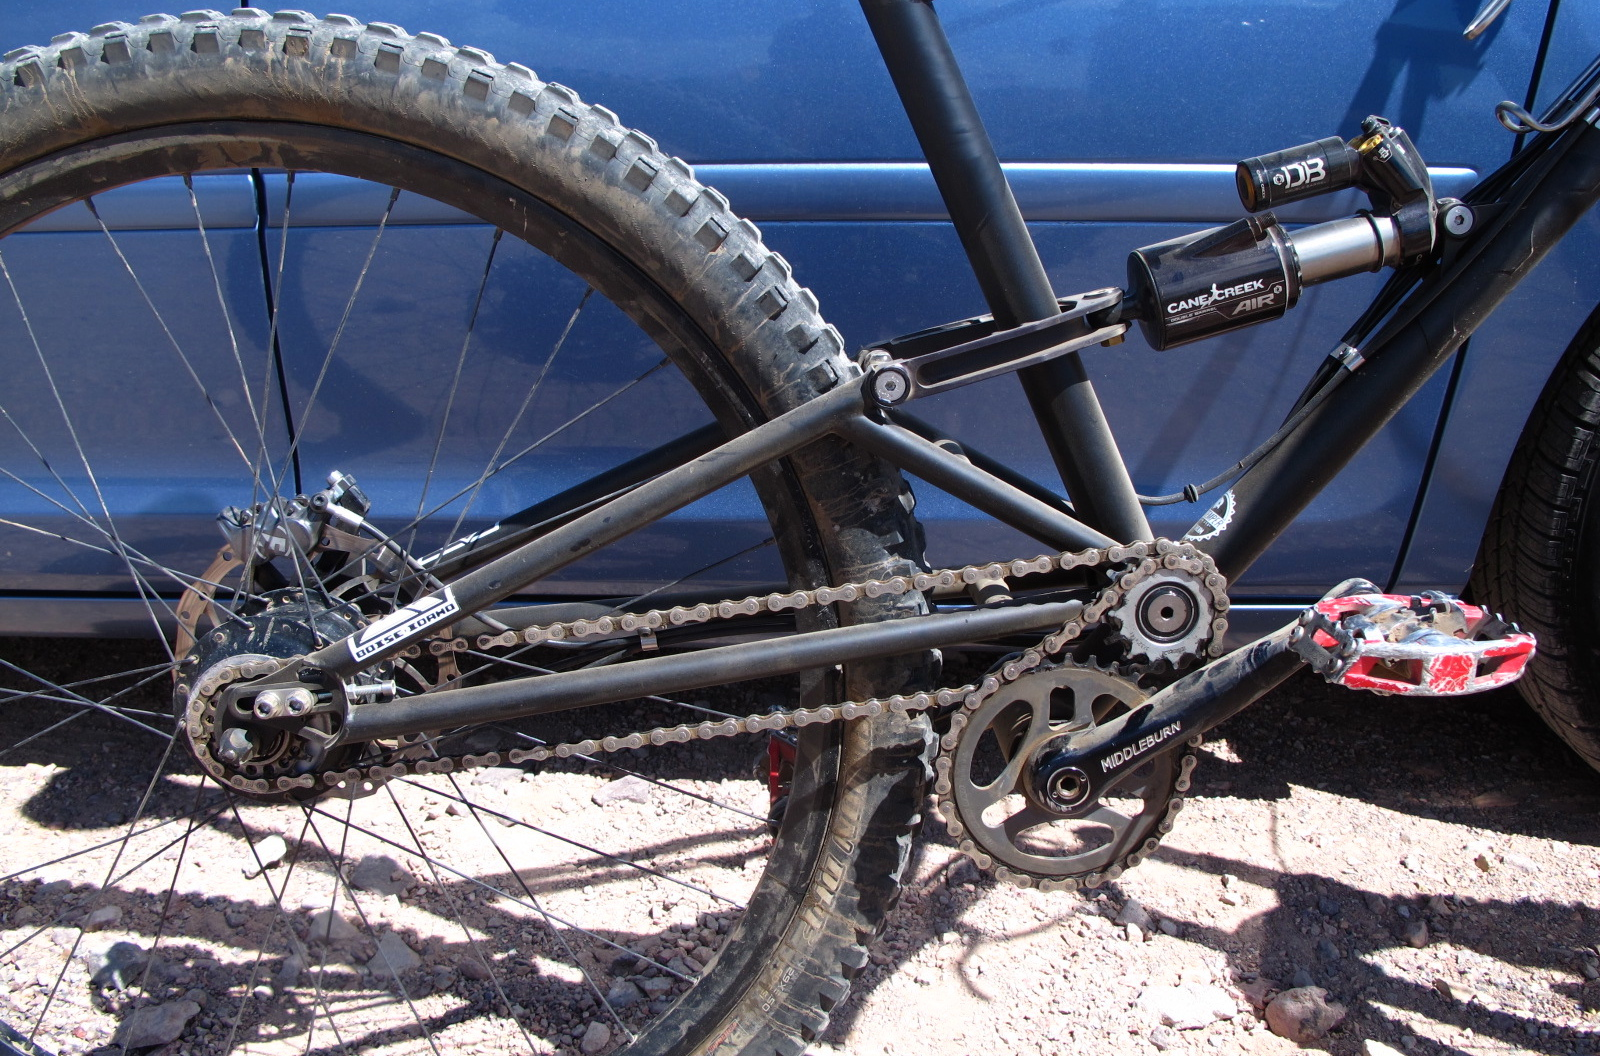 Rocking a Rohlhoff internal hub and a dual chain idler set up keeps the suspension and drive isolated.